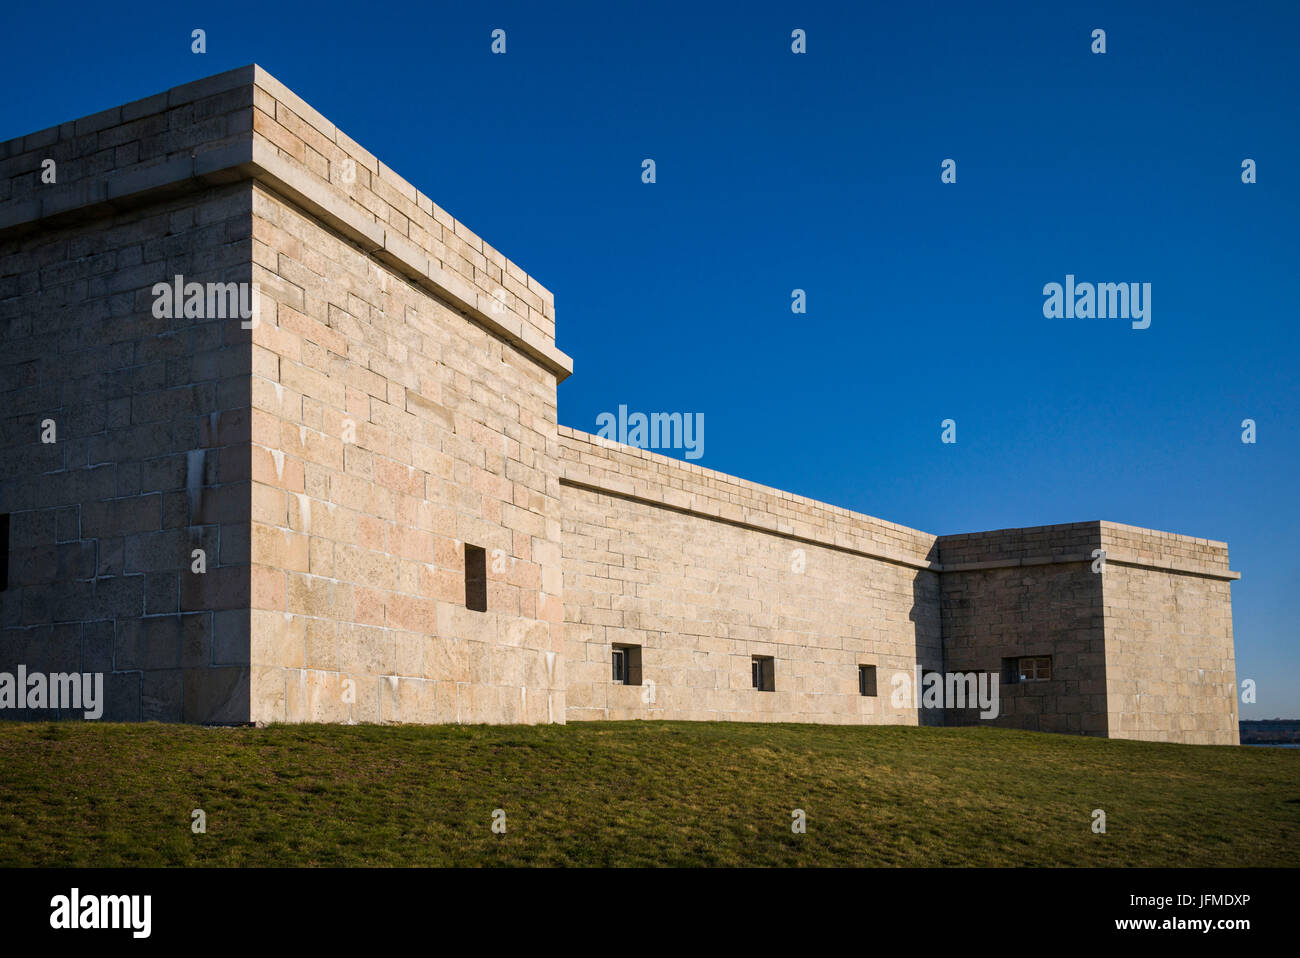 USA, Connecticut, New London, Fort Trumbull - Stock Image